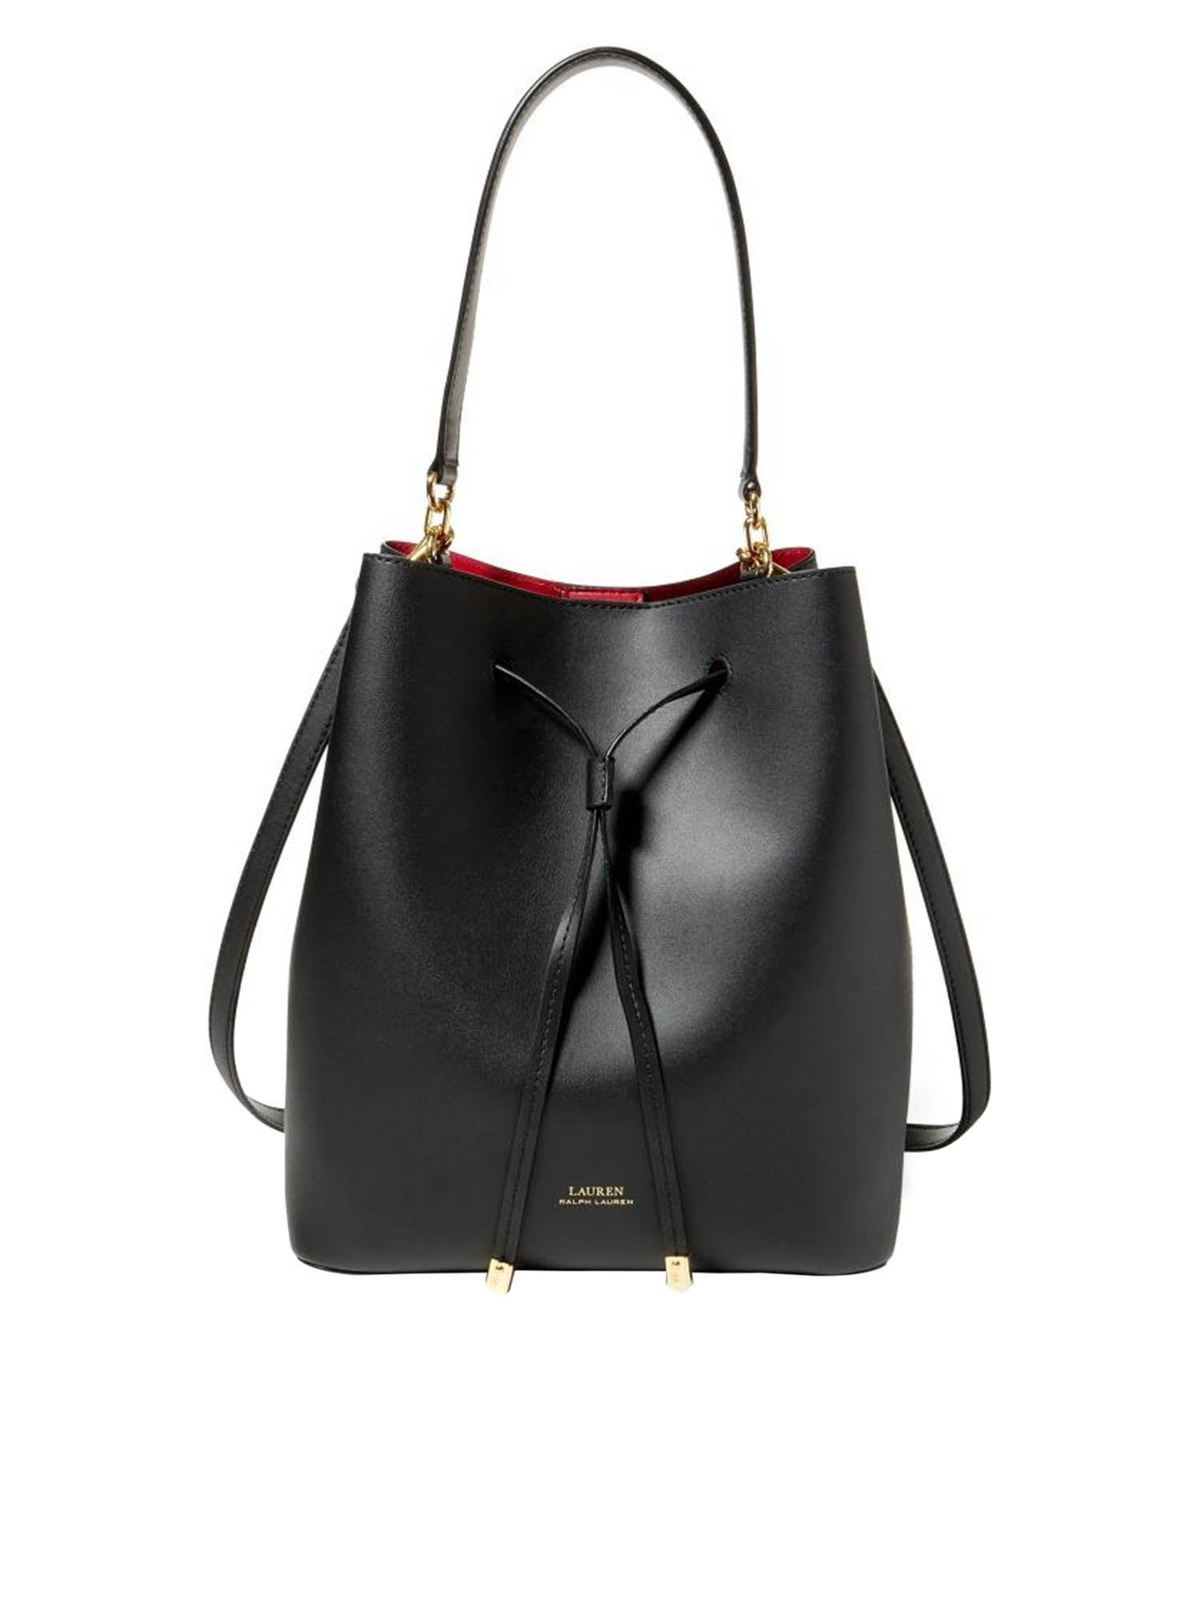 Lauren Ralph Lauren DEBBY BUCKET BAG IN BLACK